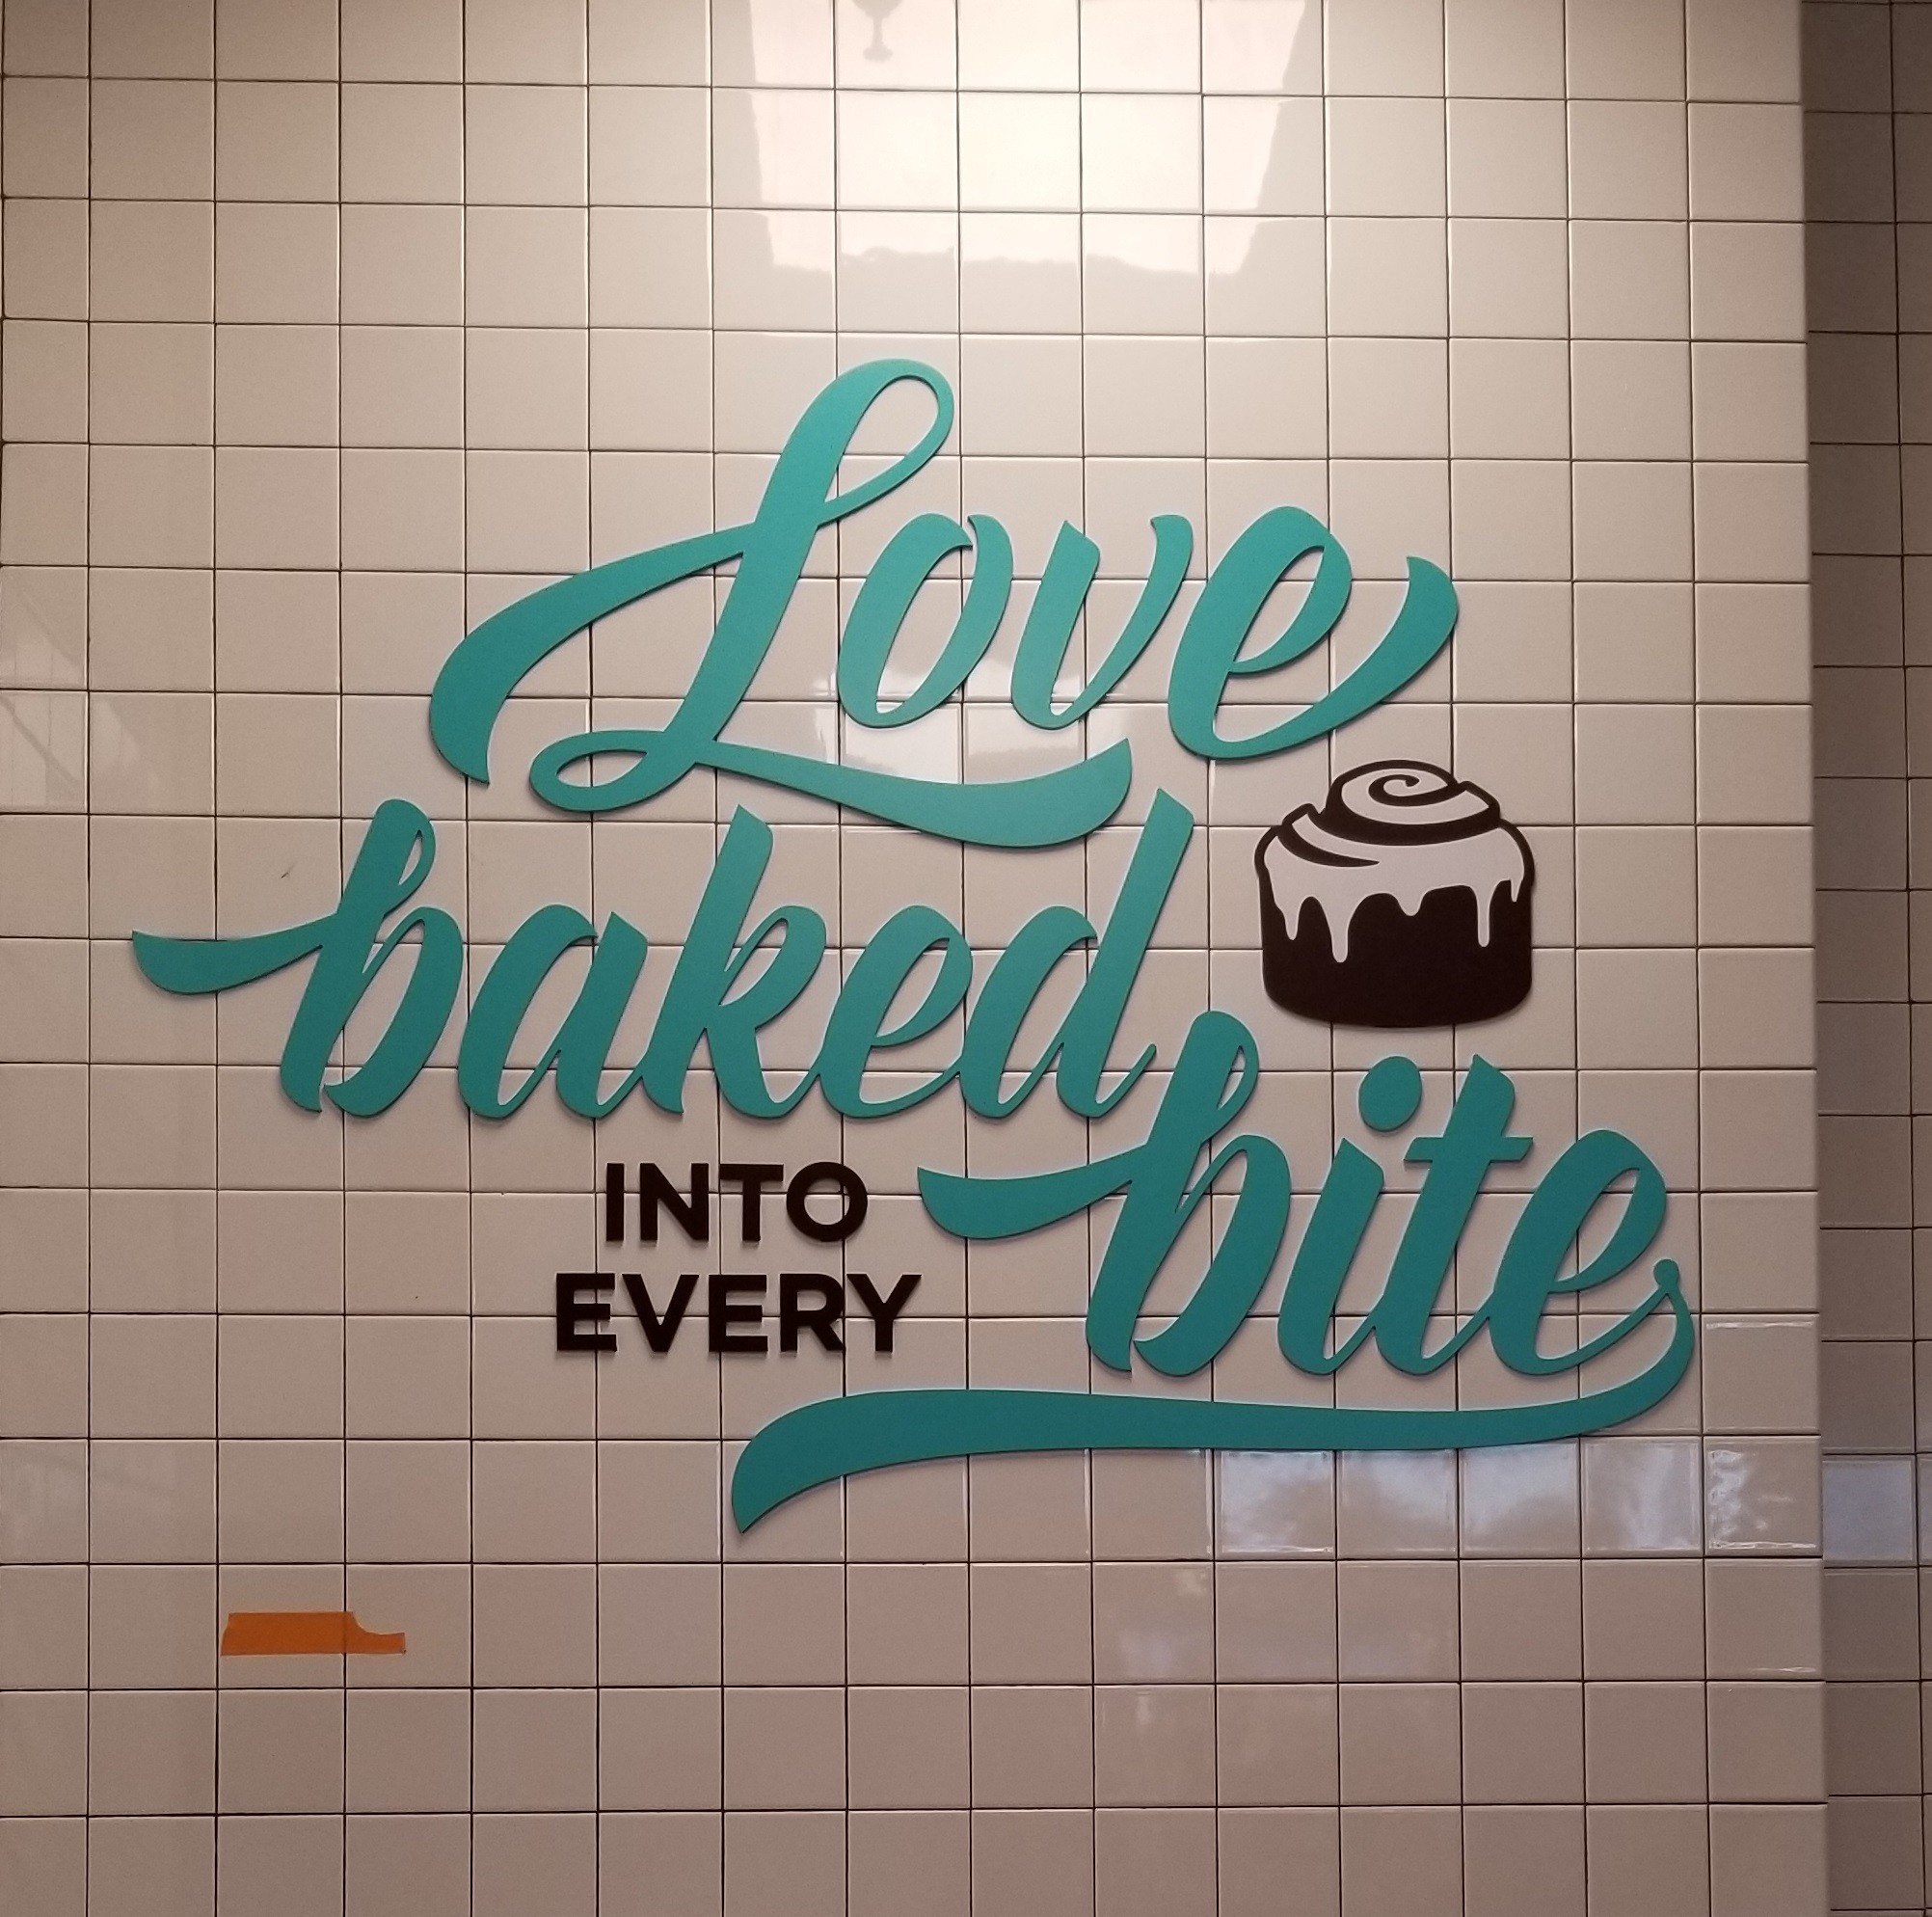 """Cinnabon's new restaurant lobby sign that very cutely tells people that """"Love is Baked Into Every Bite,"""" made in partnership with TubeArt."""